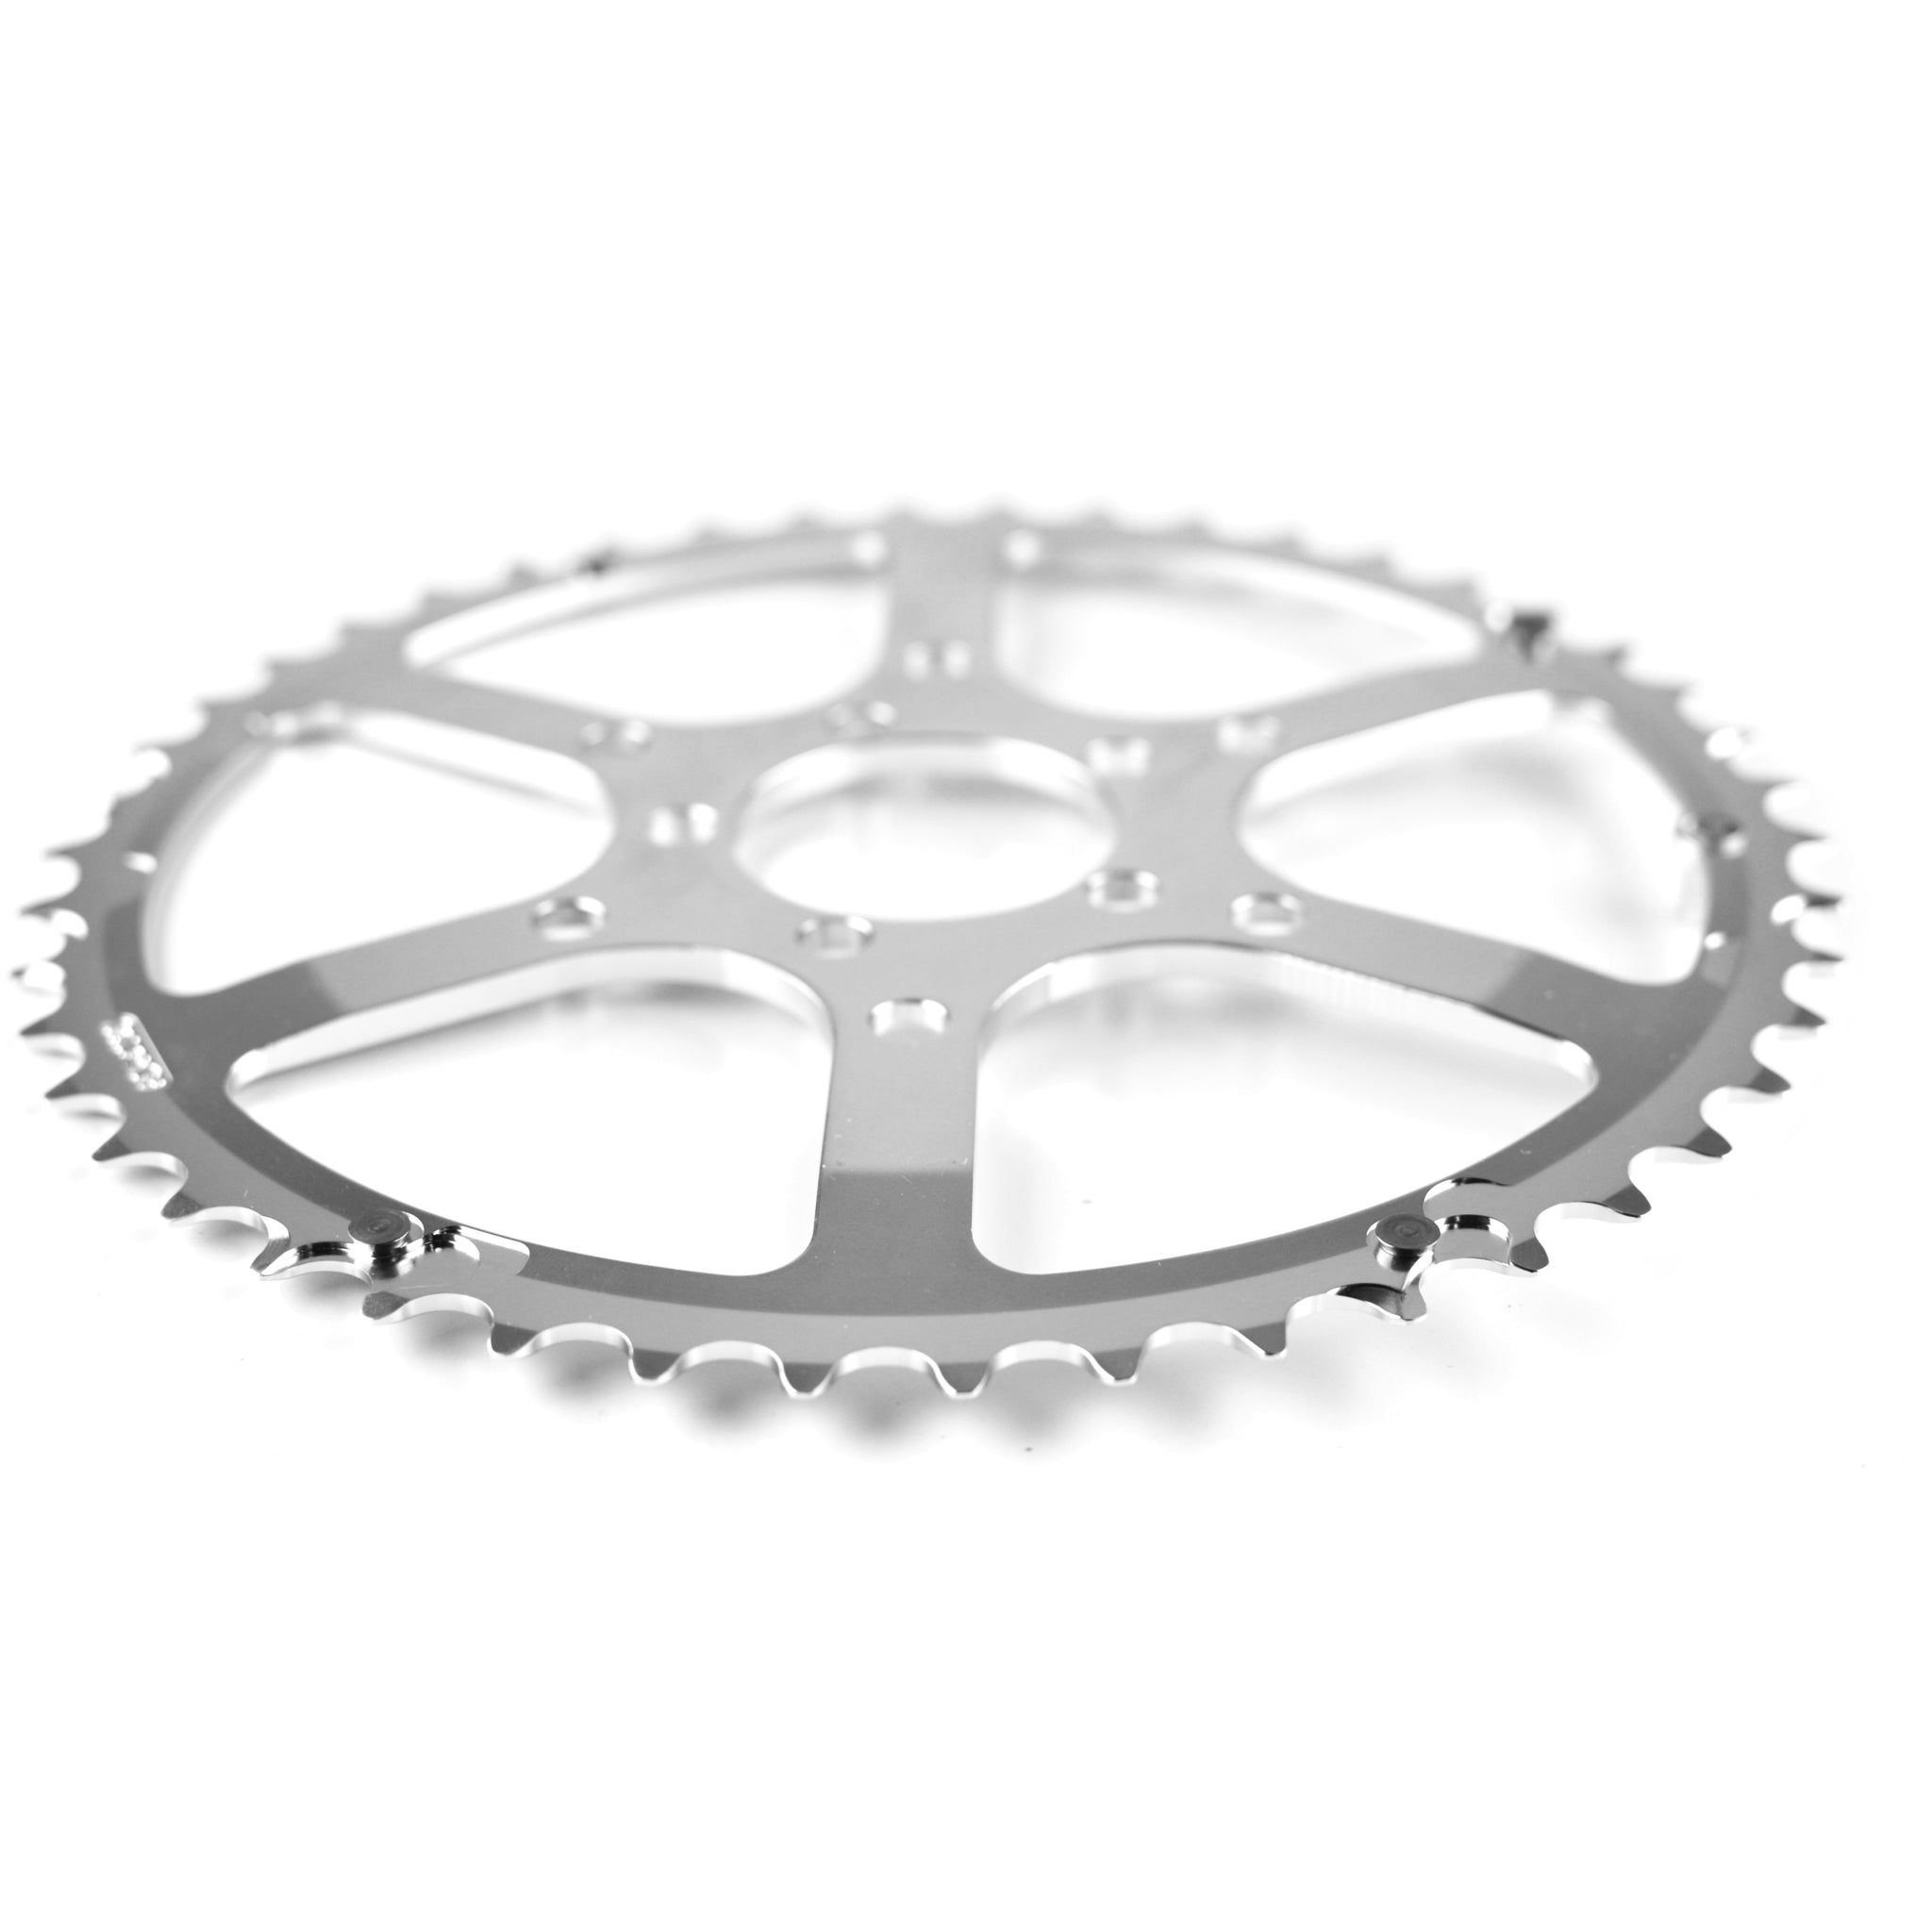 Grand Cru 50.4bcd Outer Chainring for Doubles, 46t